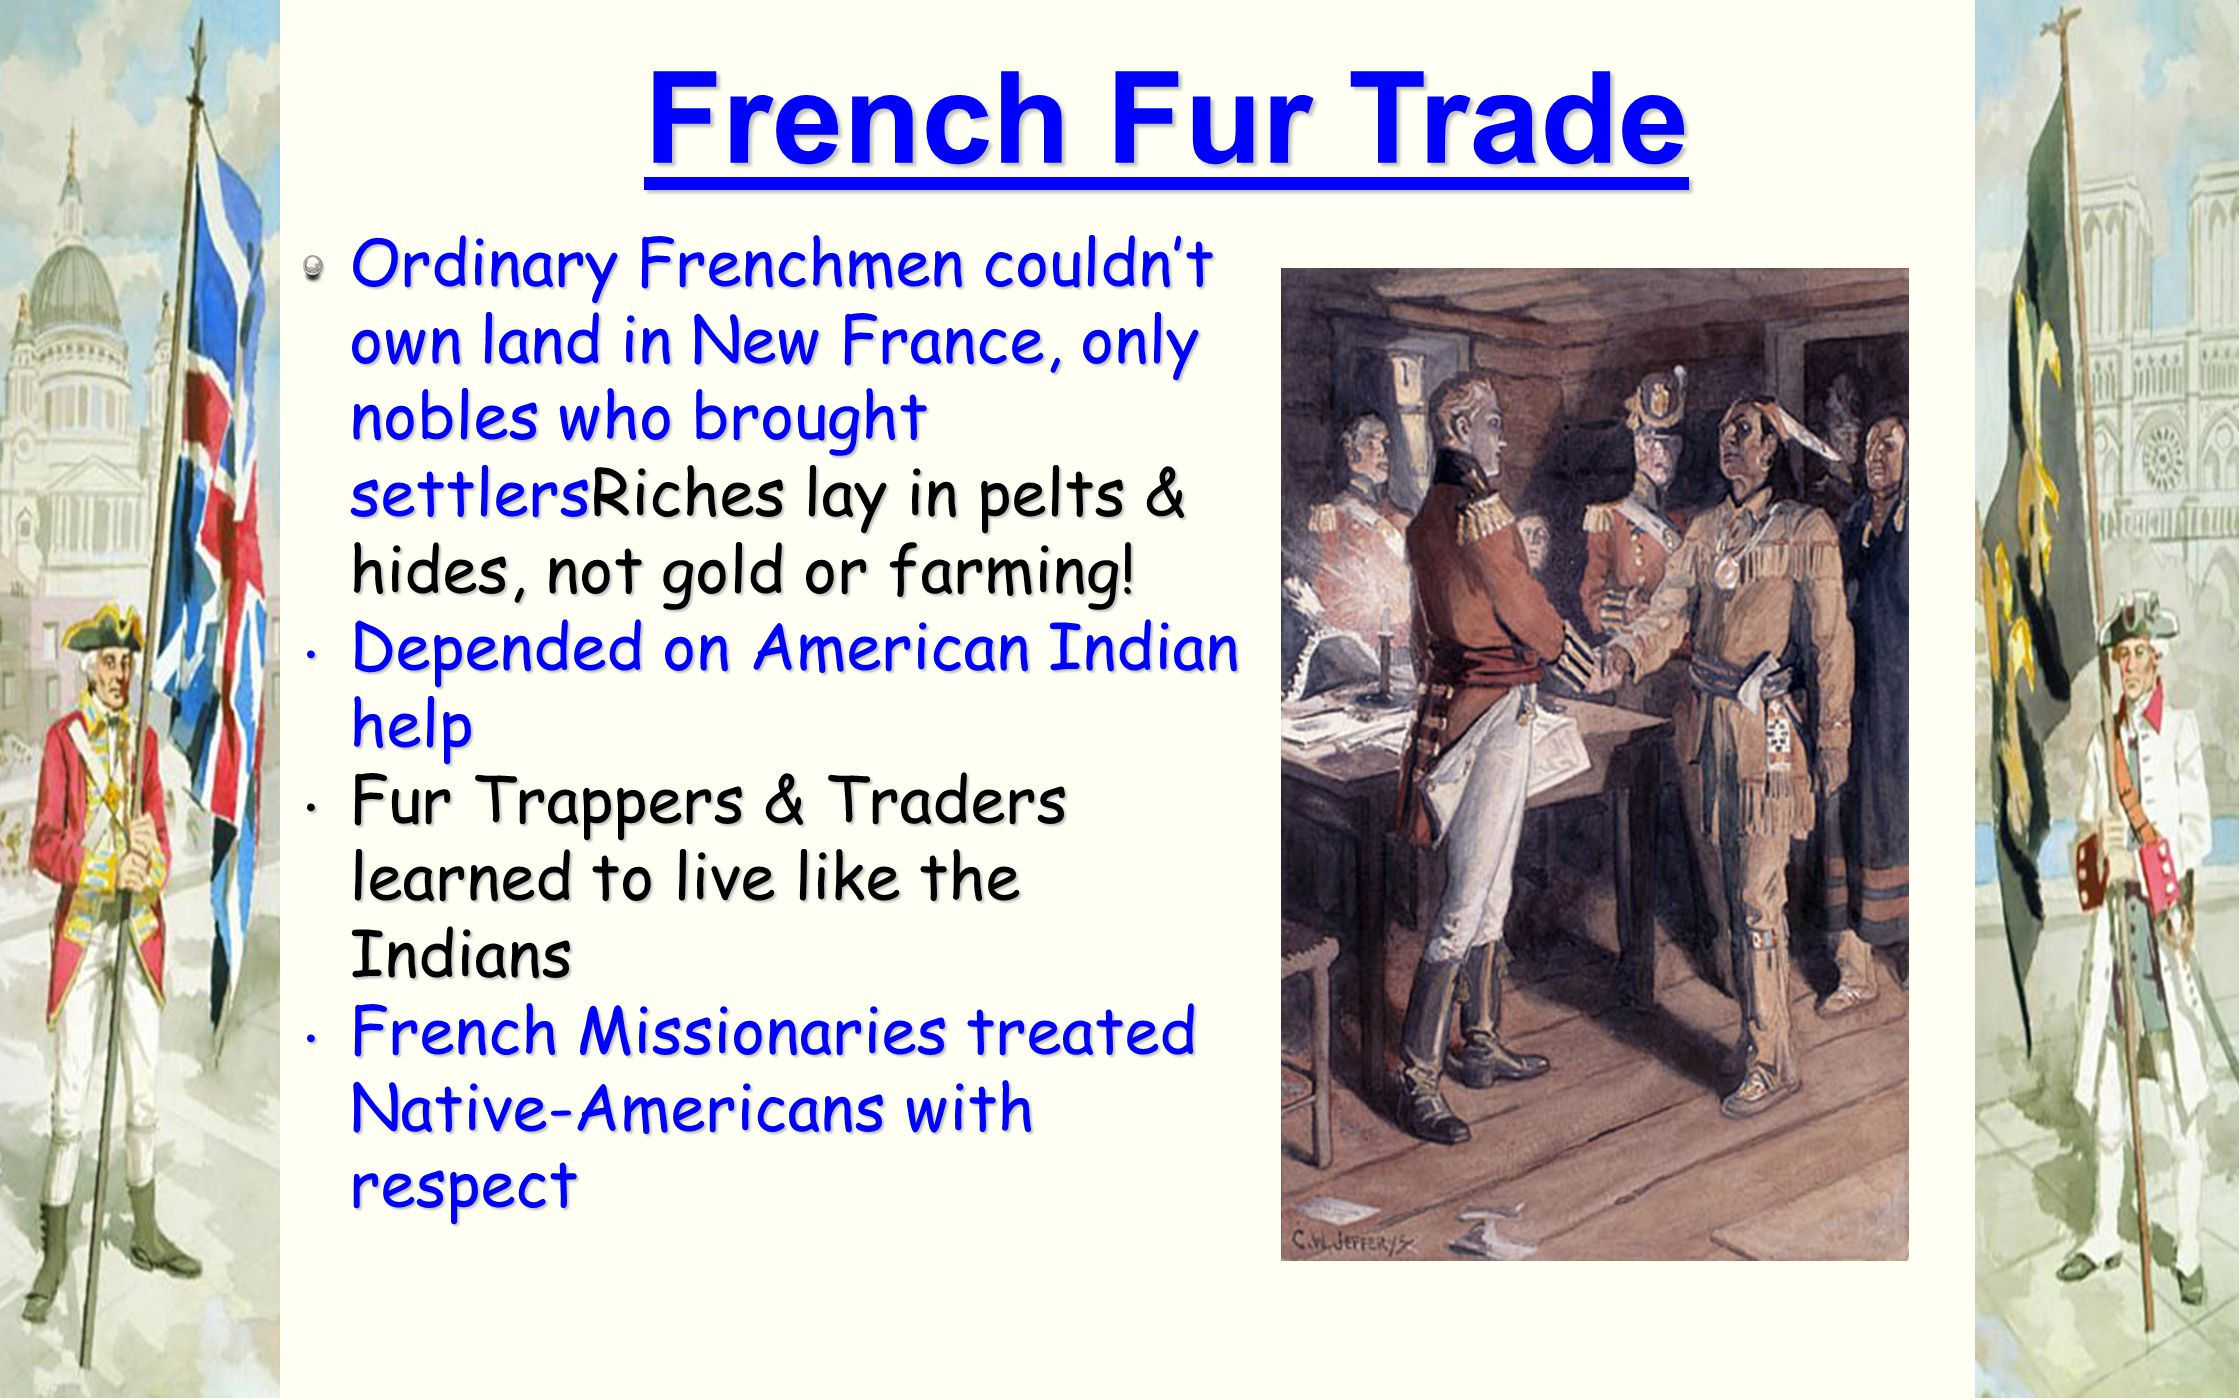 French Fur Trade